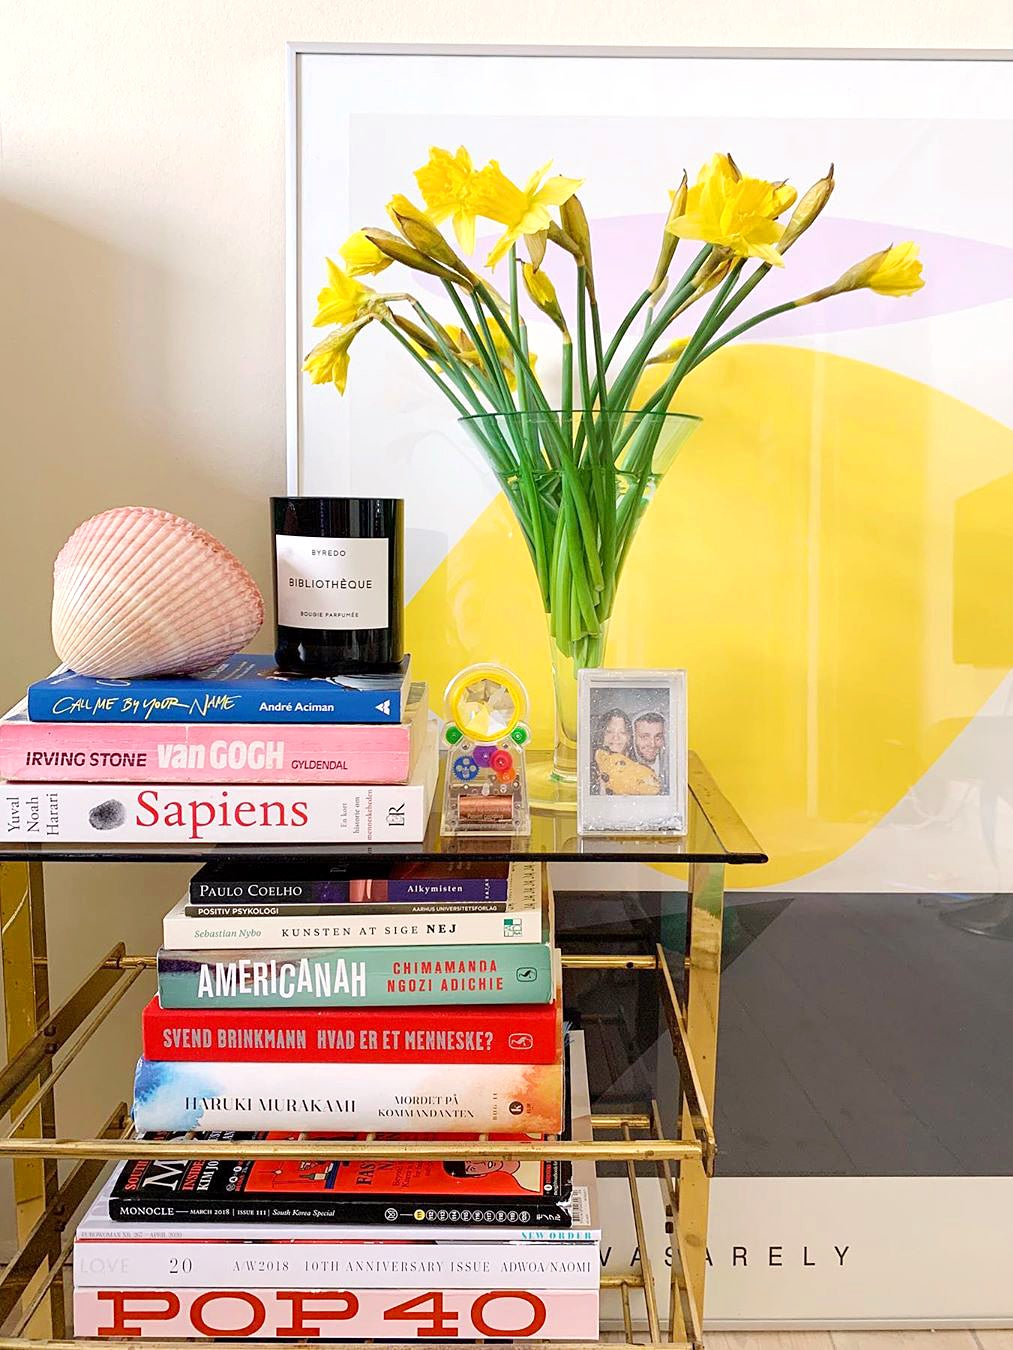 Shelf with colorful books and flowers